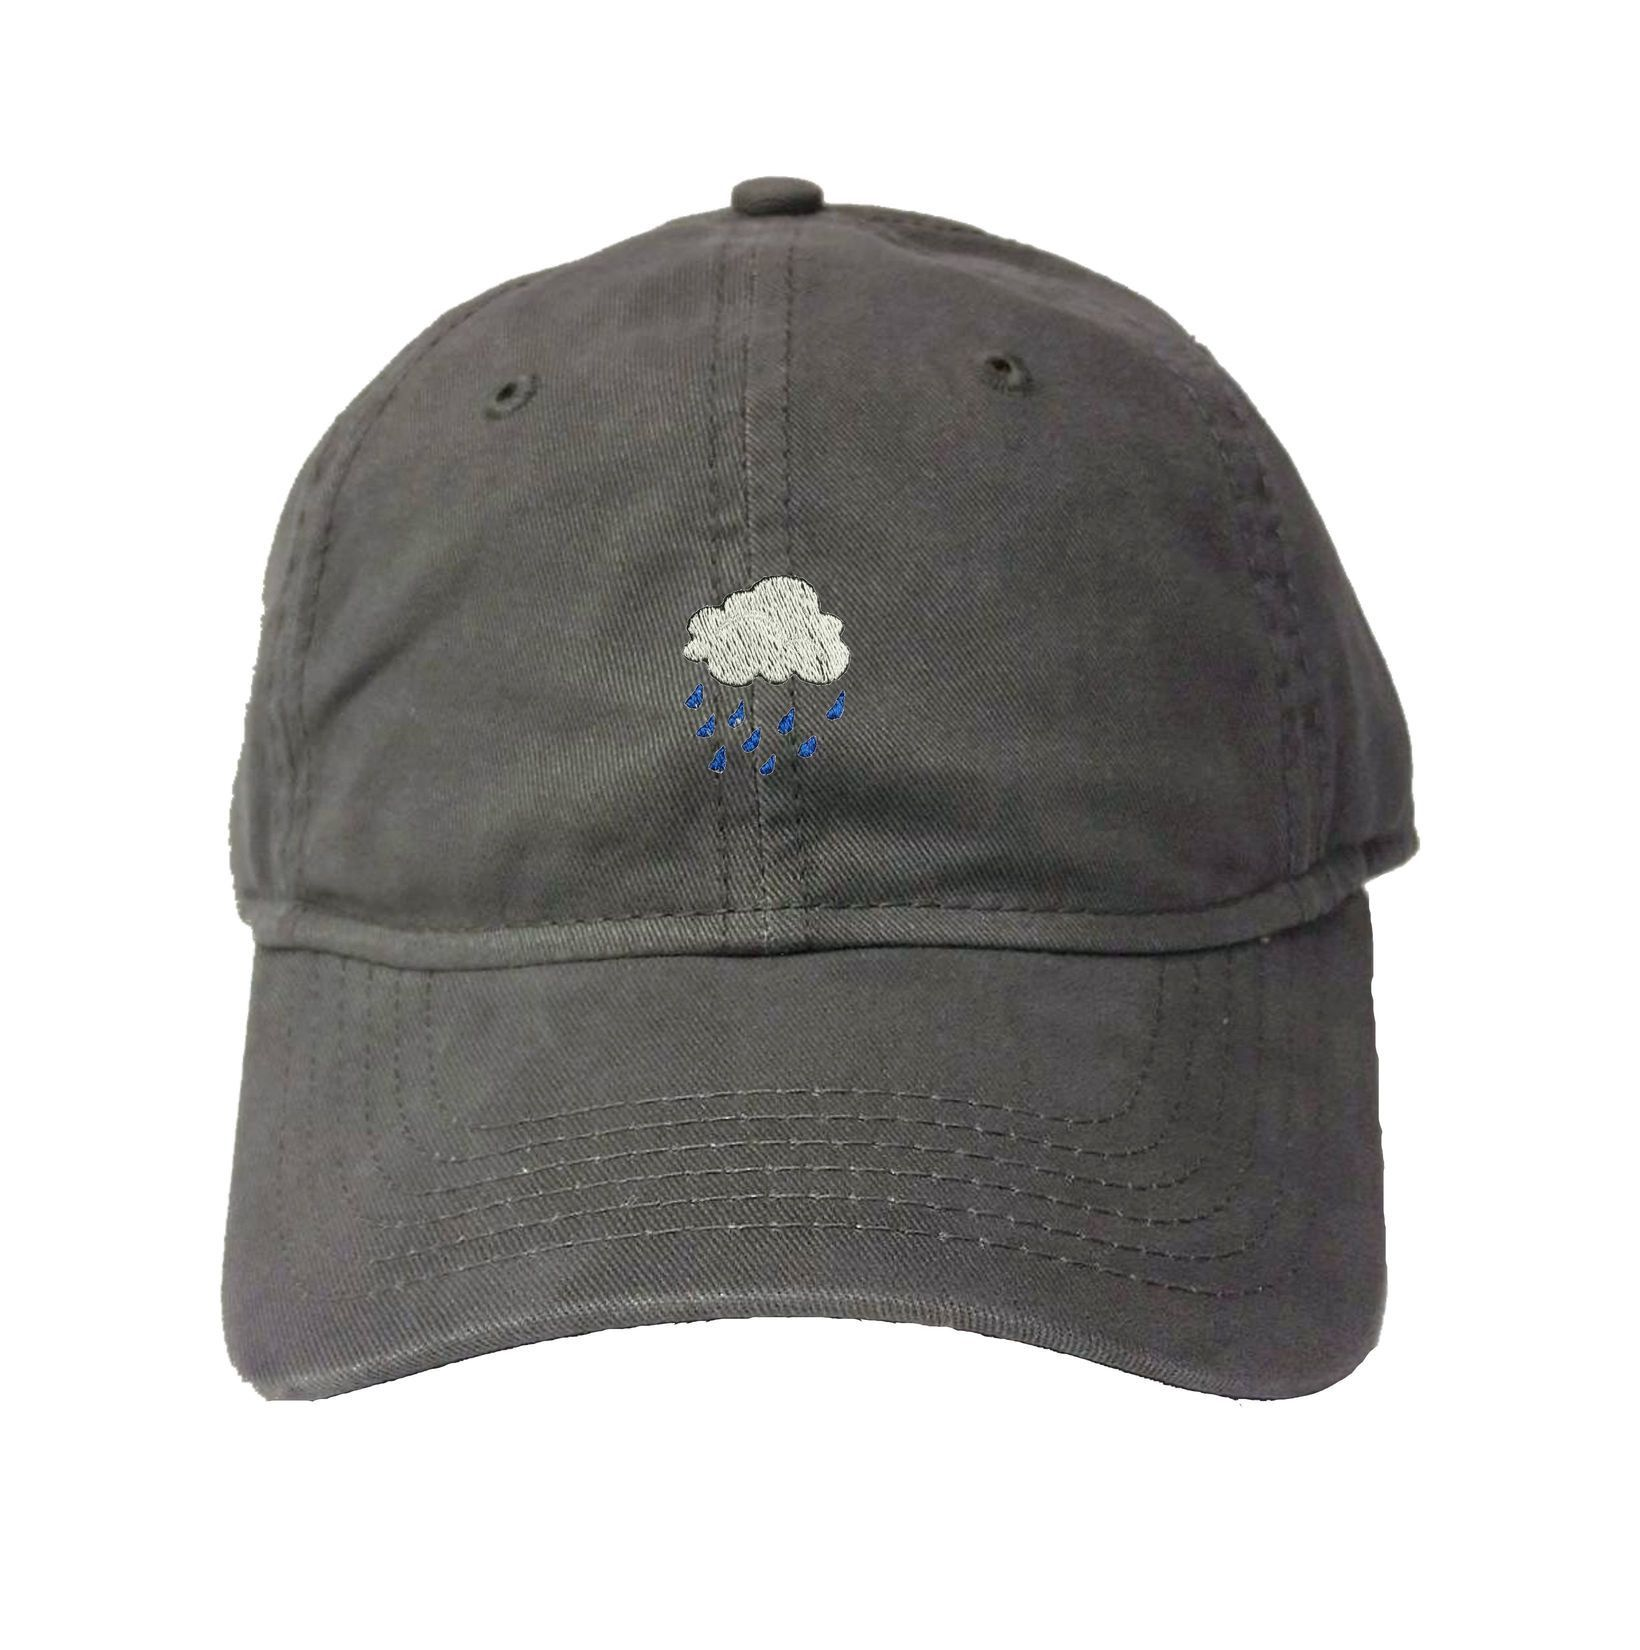 Adult Rain Cloud Embroidered Dad Hat Deluxe Cap 0fb1e0f31d68